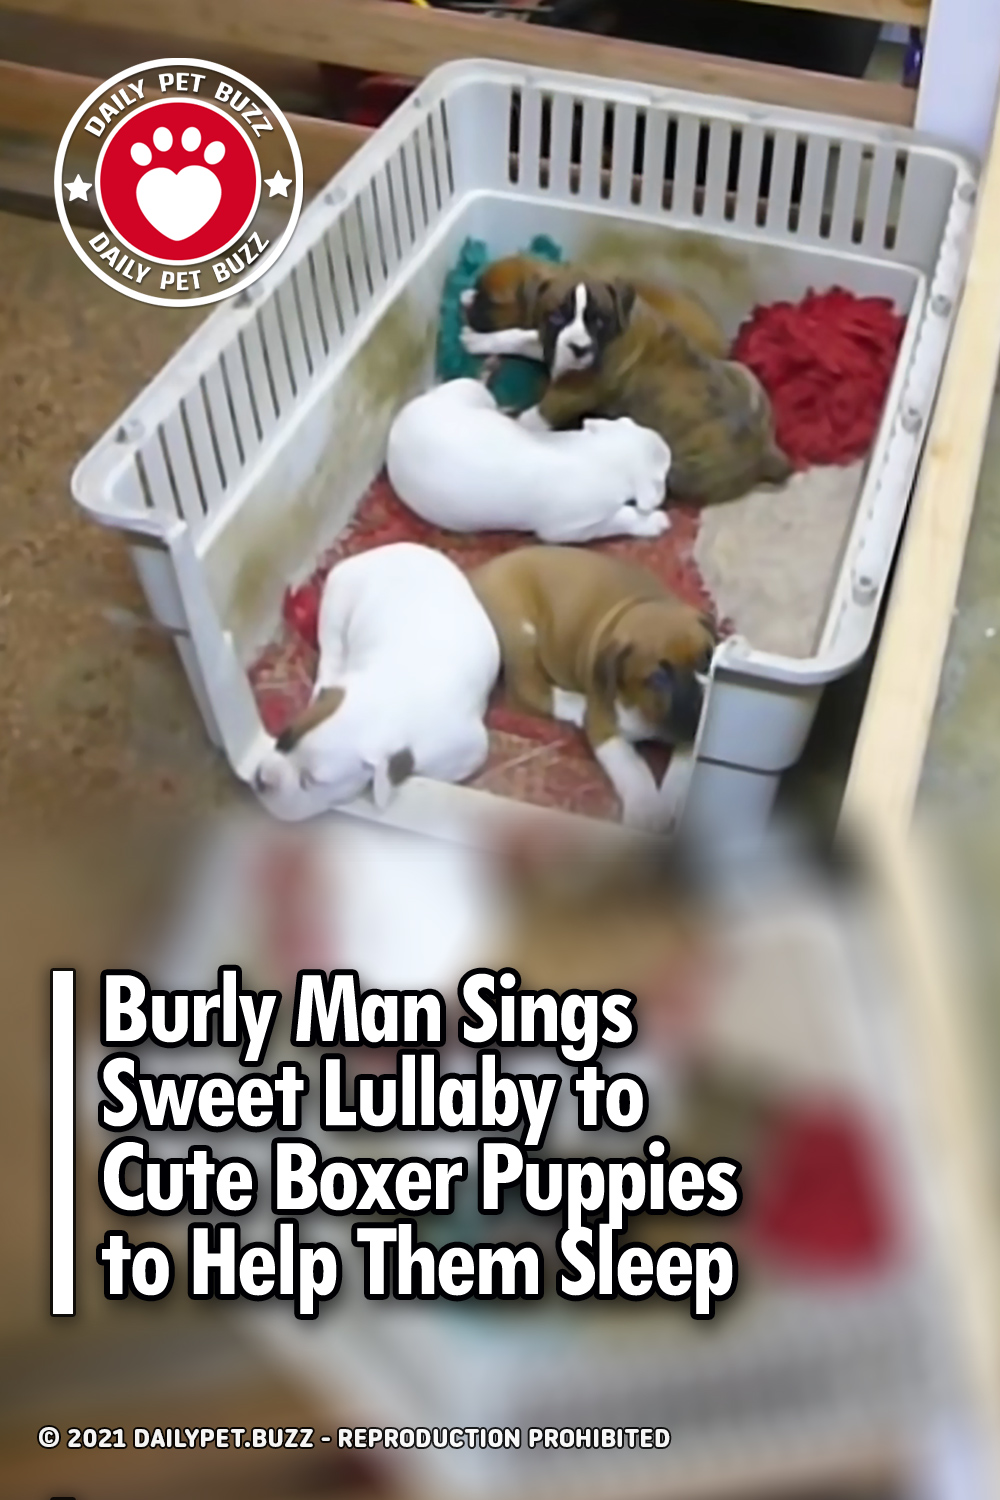 Burly Man Sings Sweet Lullaby to Cute Boxer Puppies to Help Them Sleep